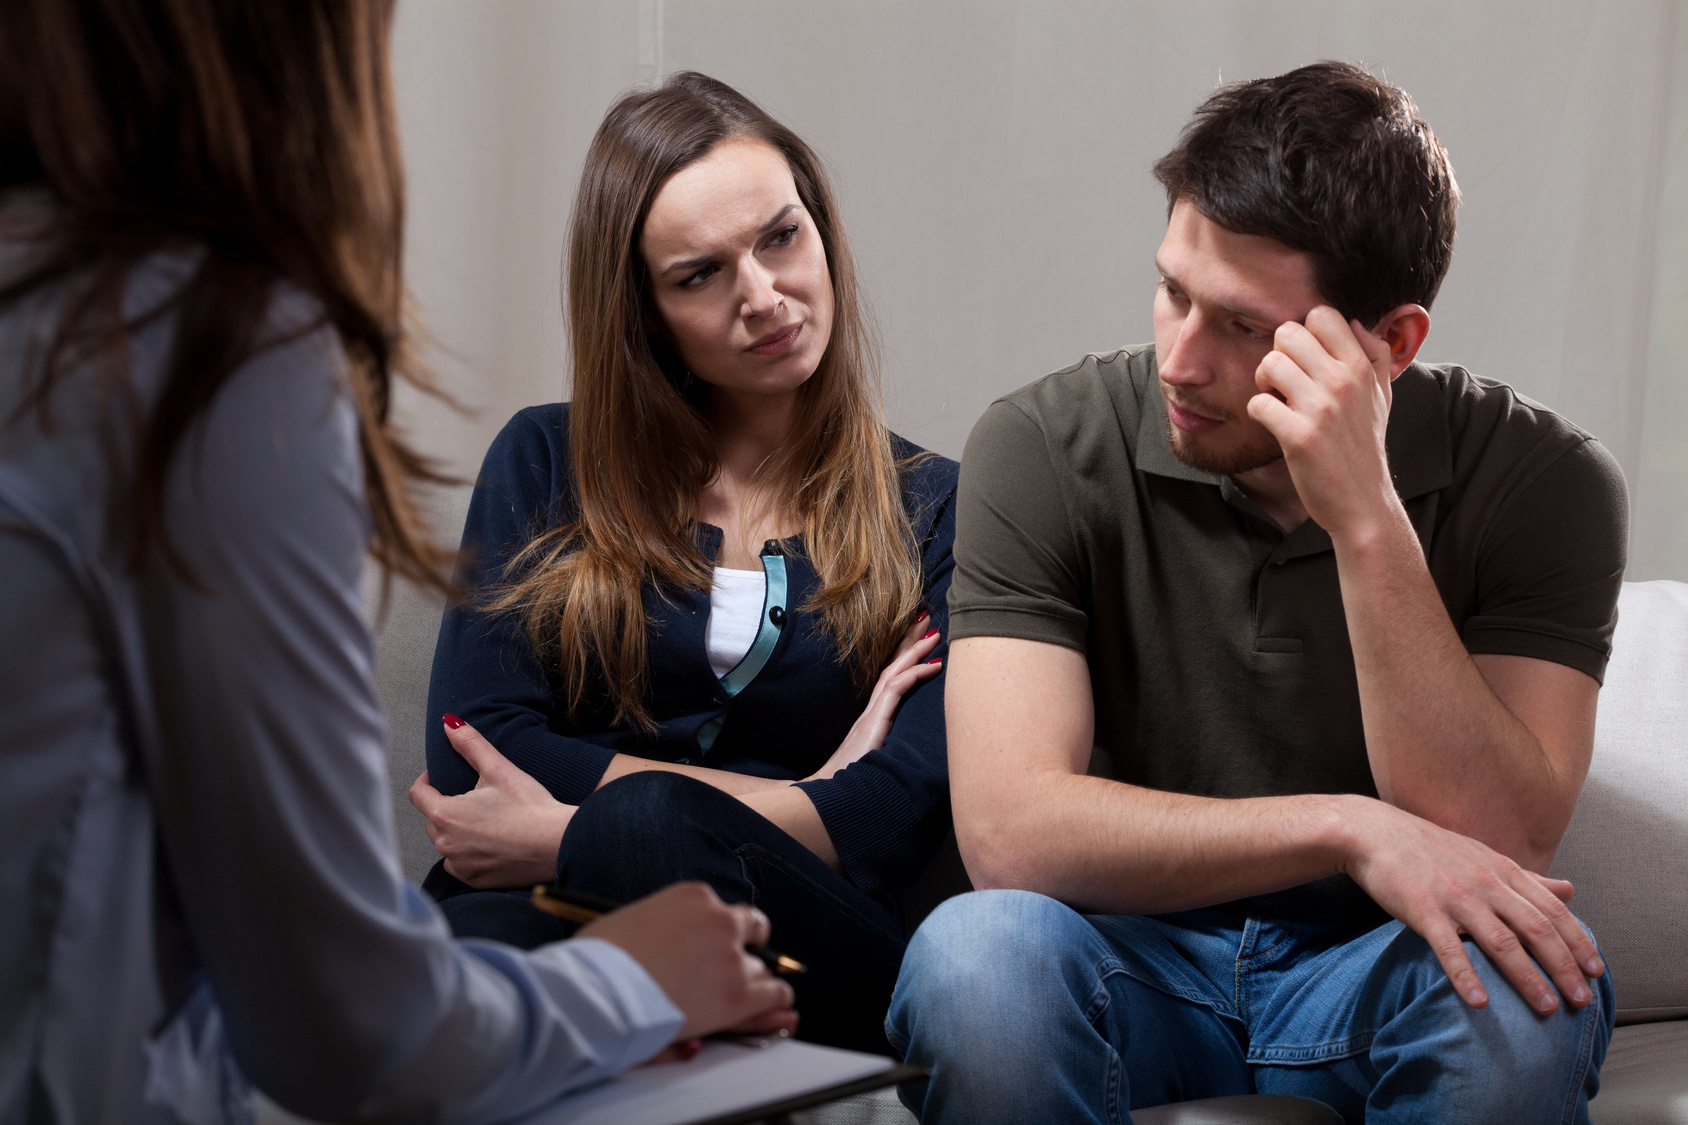 Unhappy at odds couple sitting on psychotherapy session